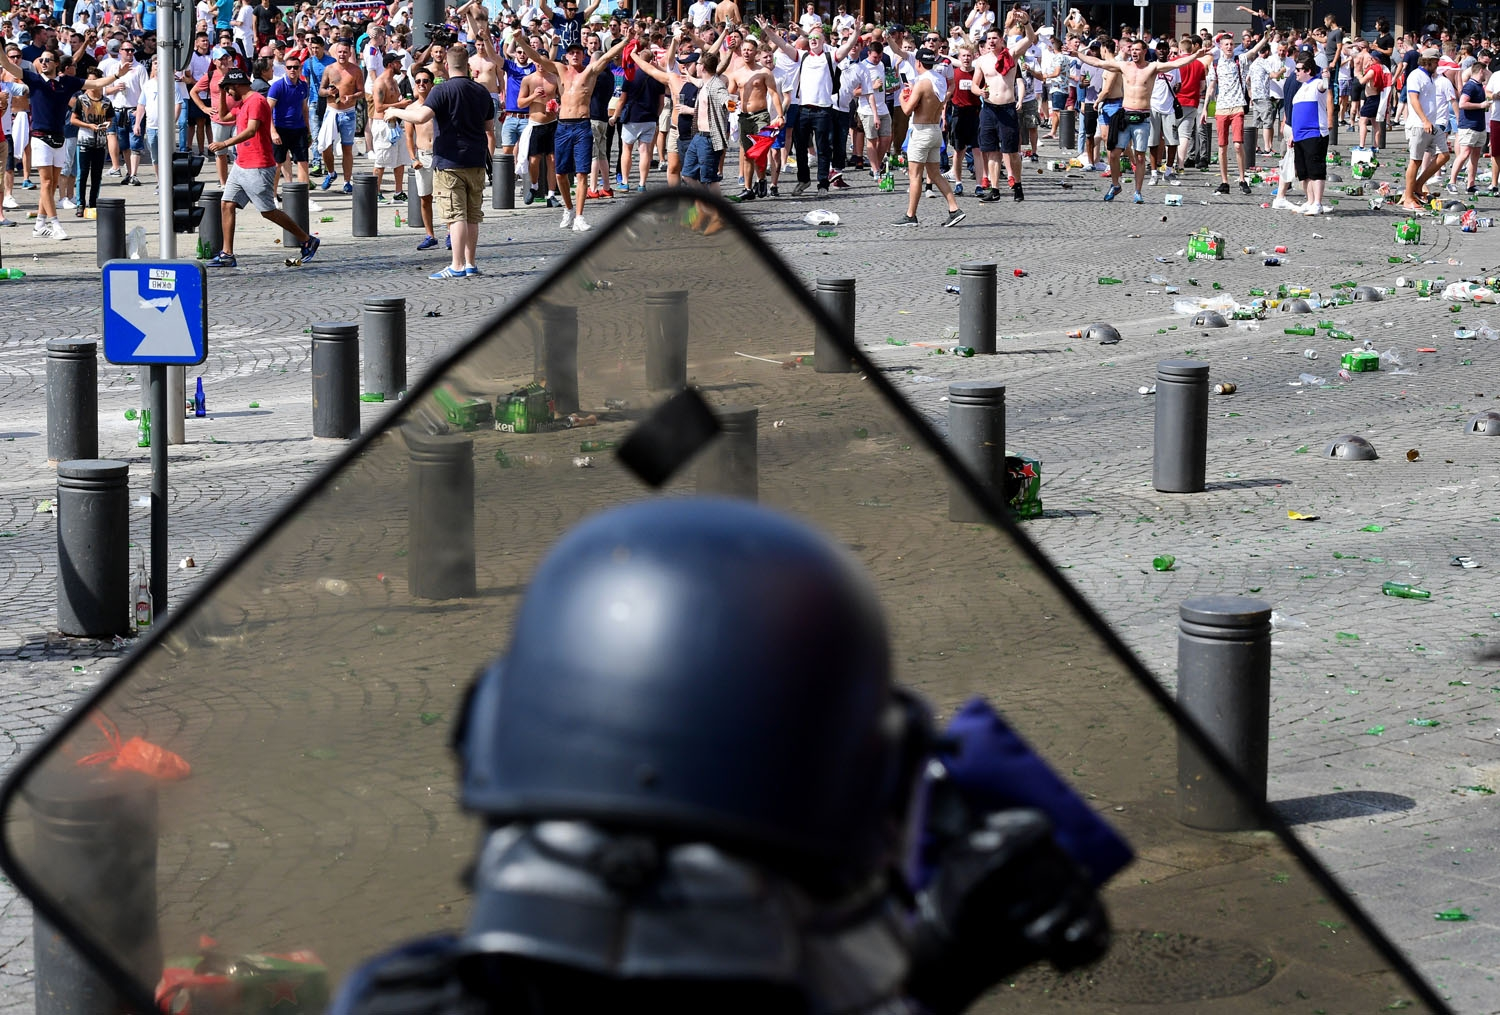 England fans clash with police personnel as England fans gather in the city of Marseille, southern France, on June 11, 2016, ahead of the Euro 2016 football match between England and Russia